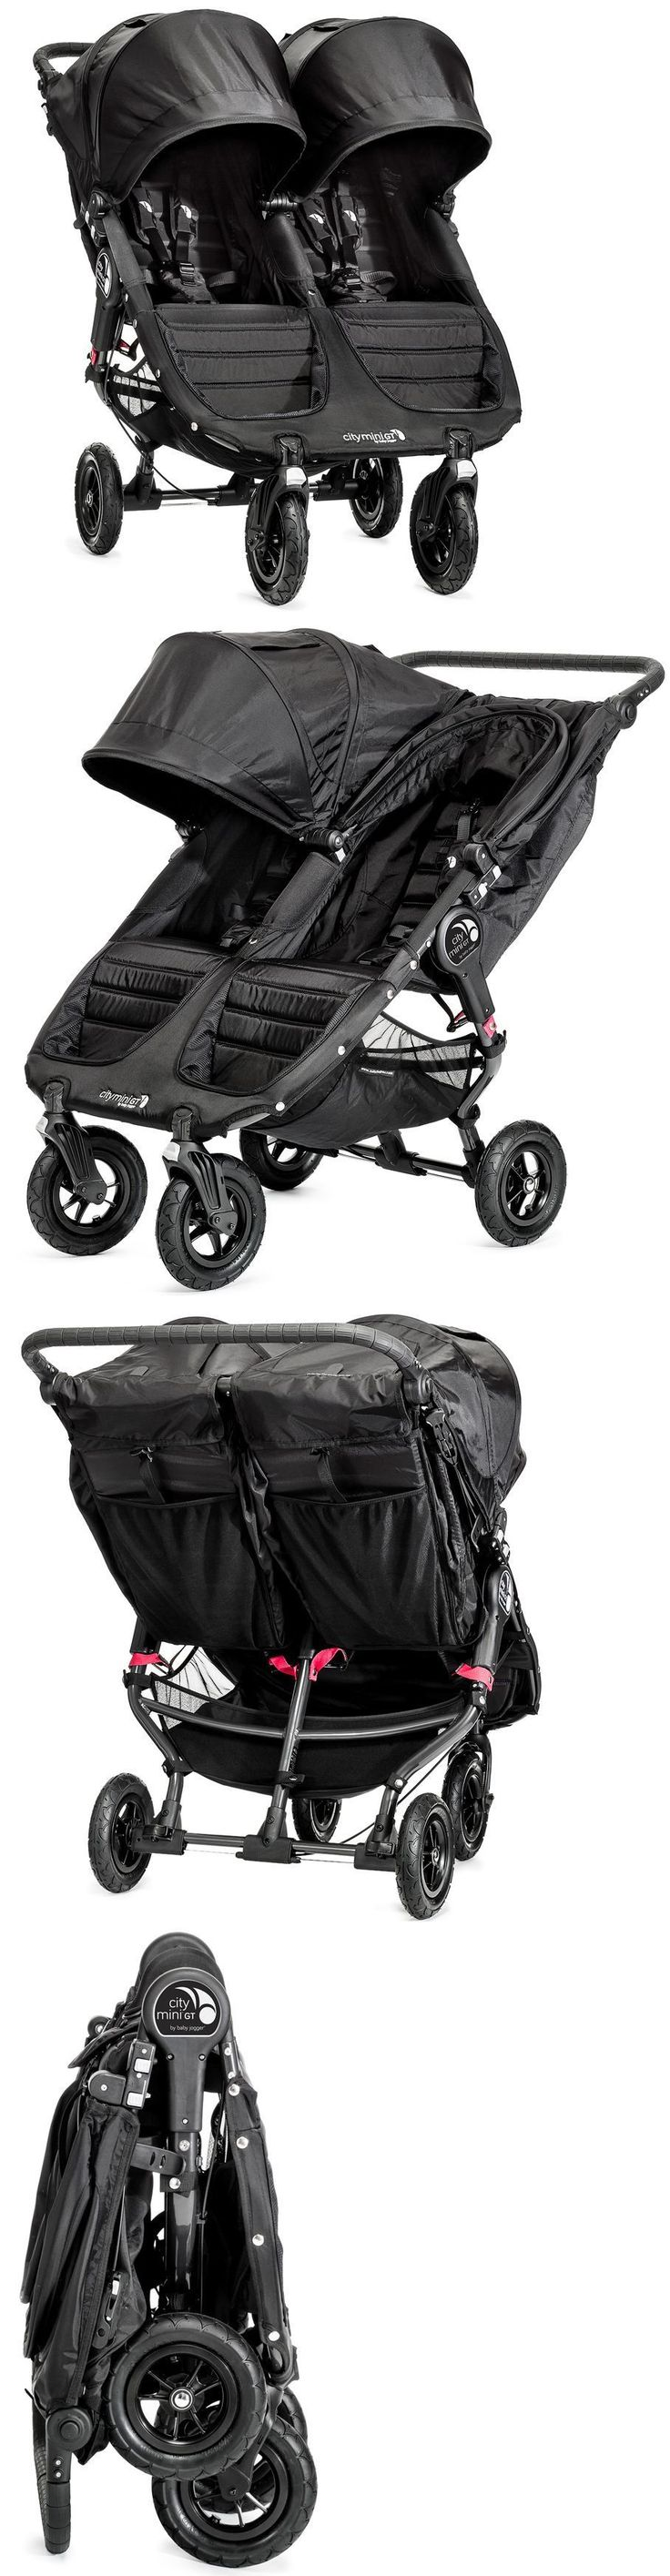 Other Baby Gear 100224: Baby Jogger City Mini Gt Double Twin All Terrain Stroller Black New -> BUY IT NOW ONLY: $492.99 on eBay!